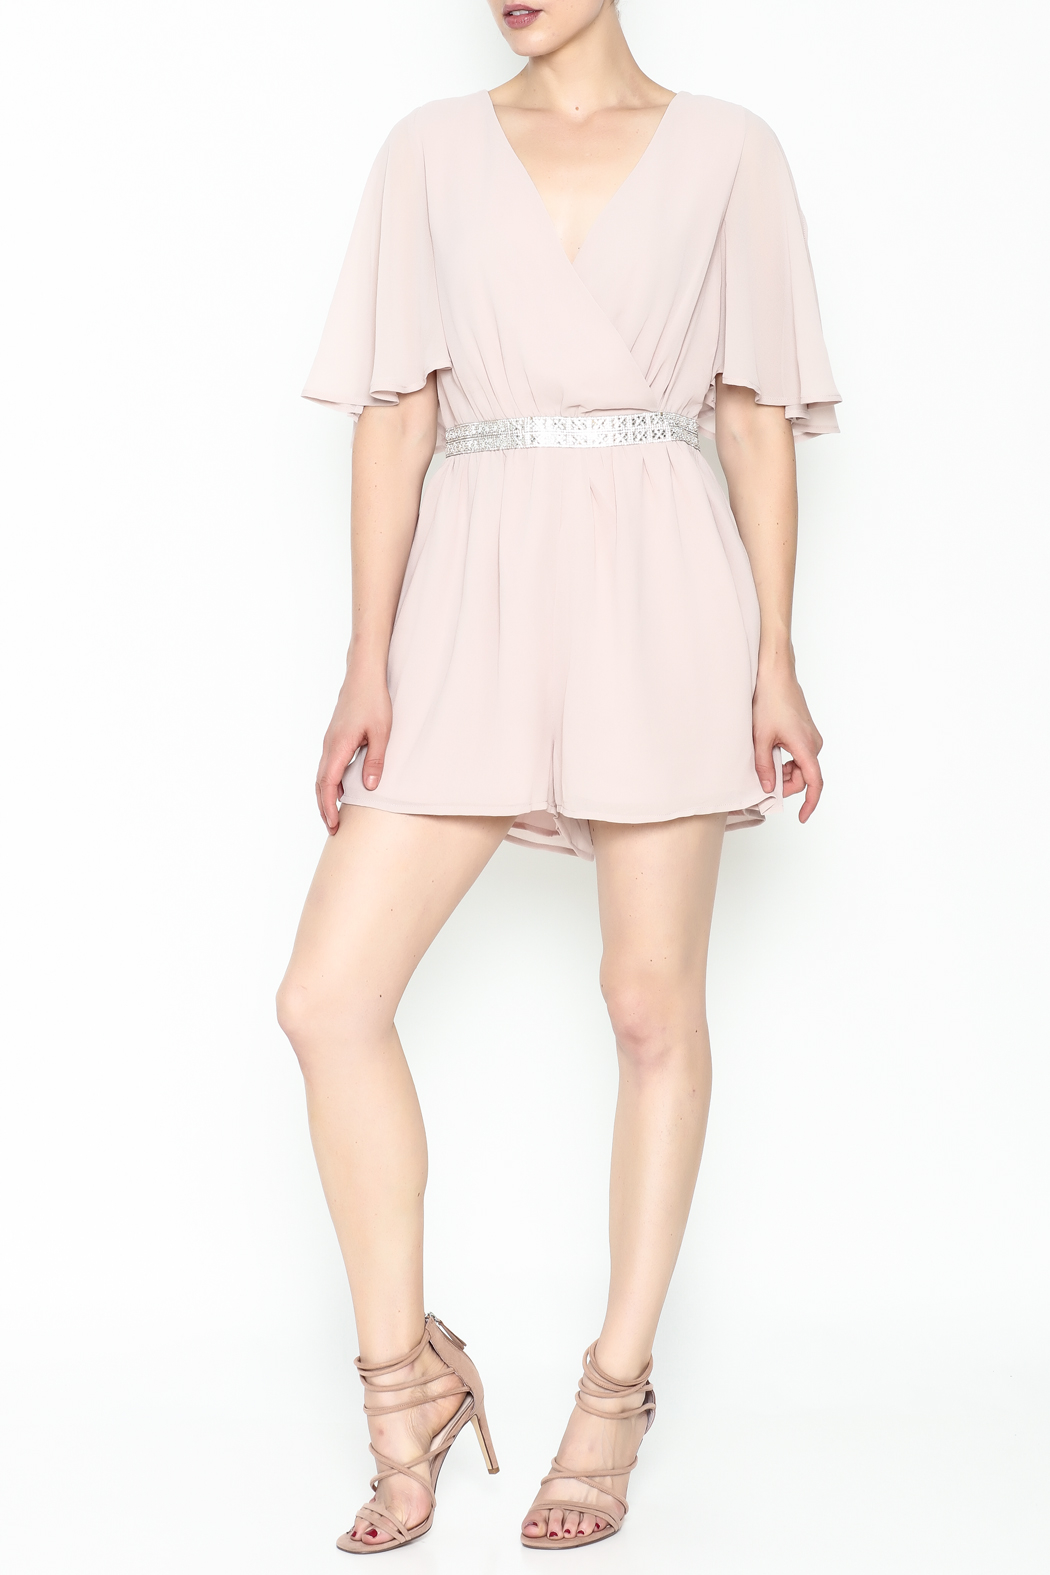 Ark & Co. Jewel Waist Romper - Side Cropped Image